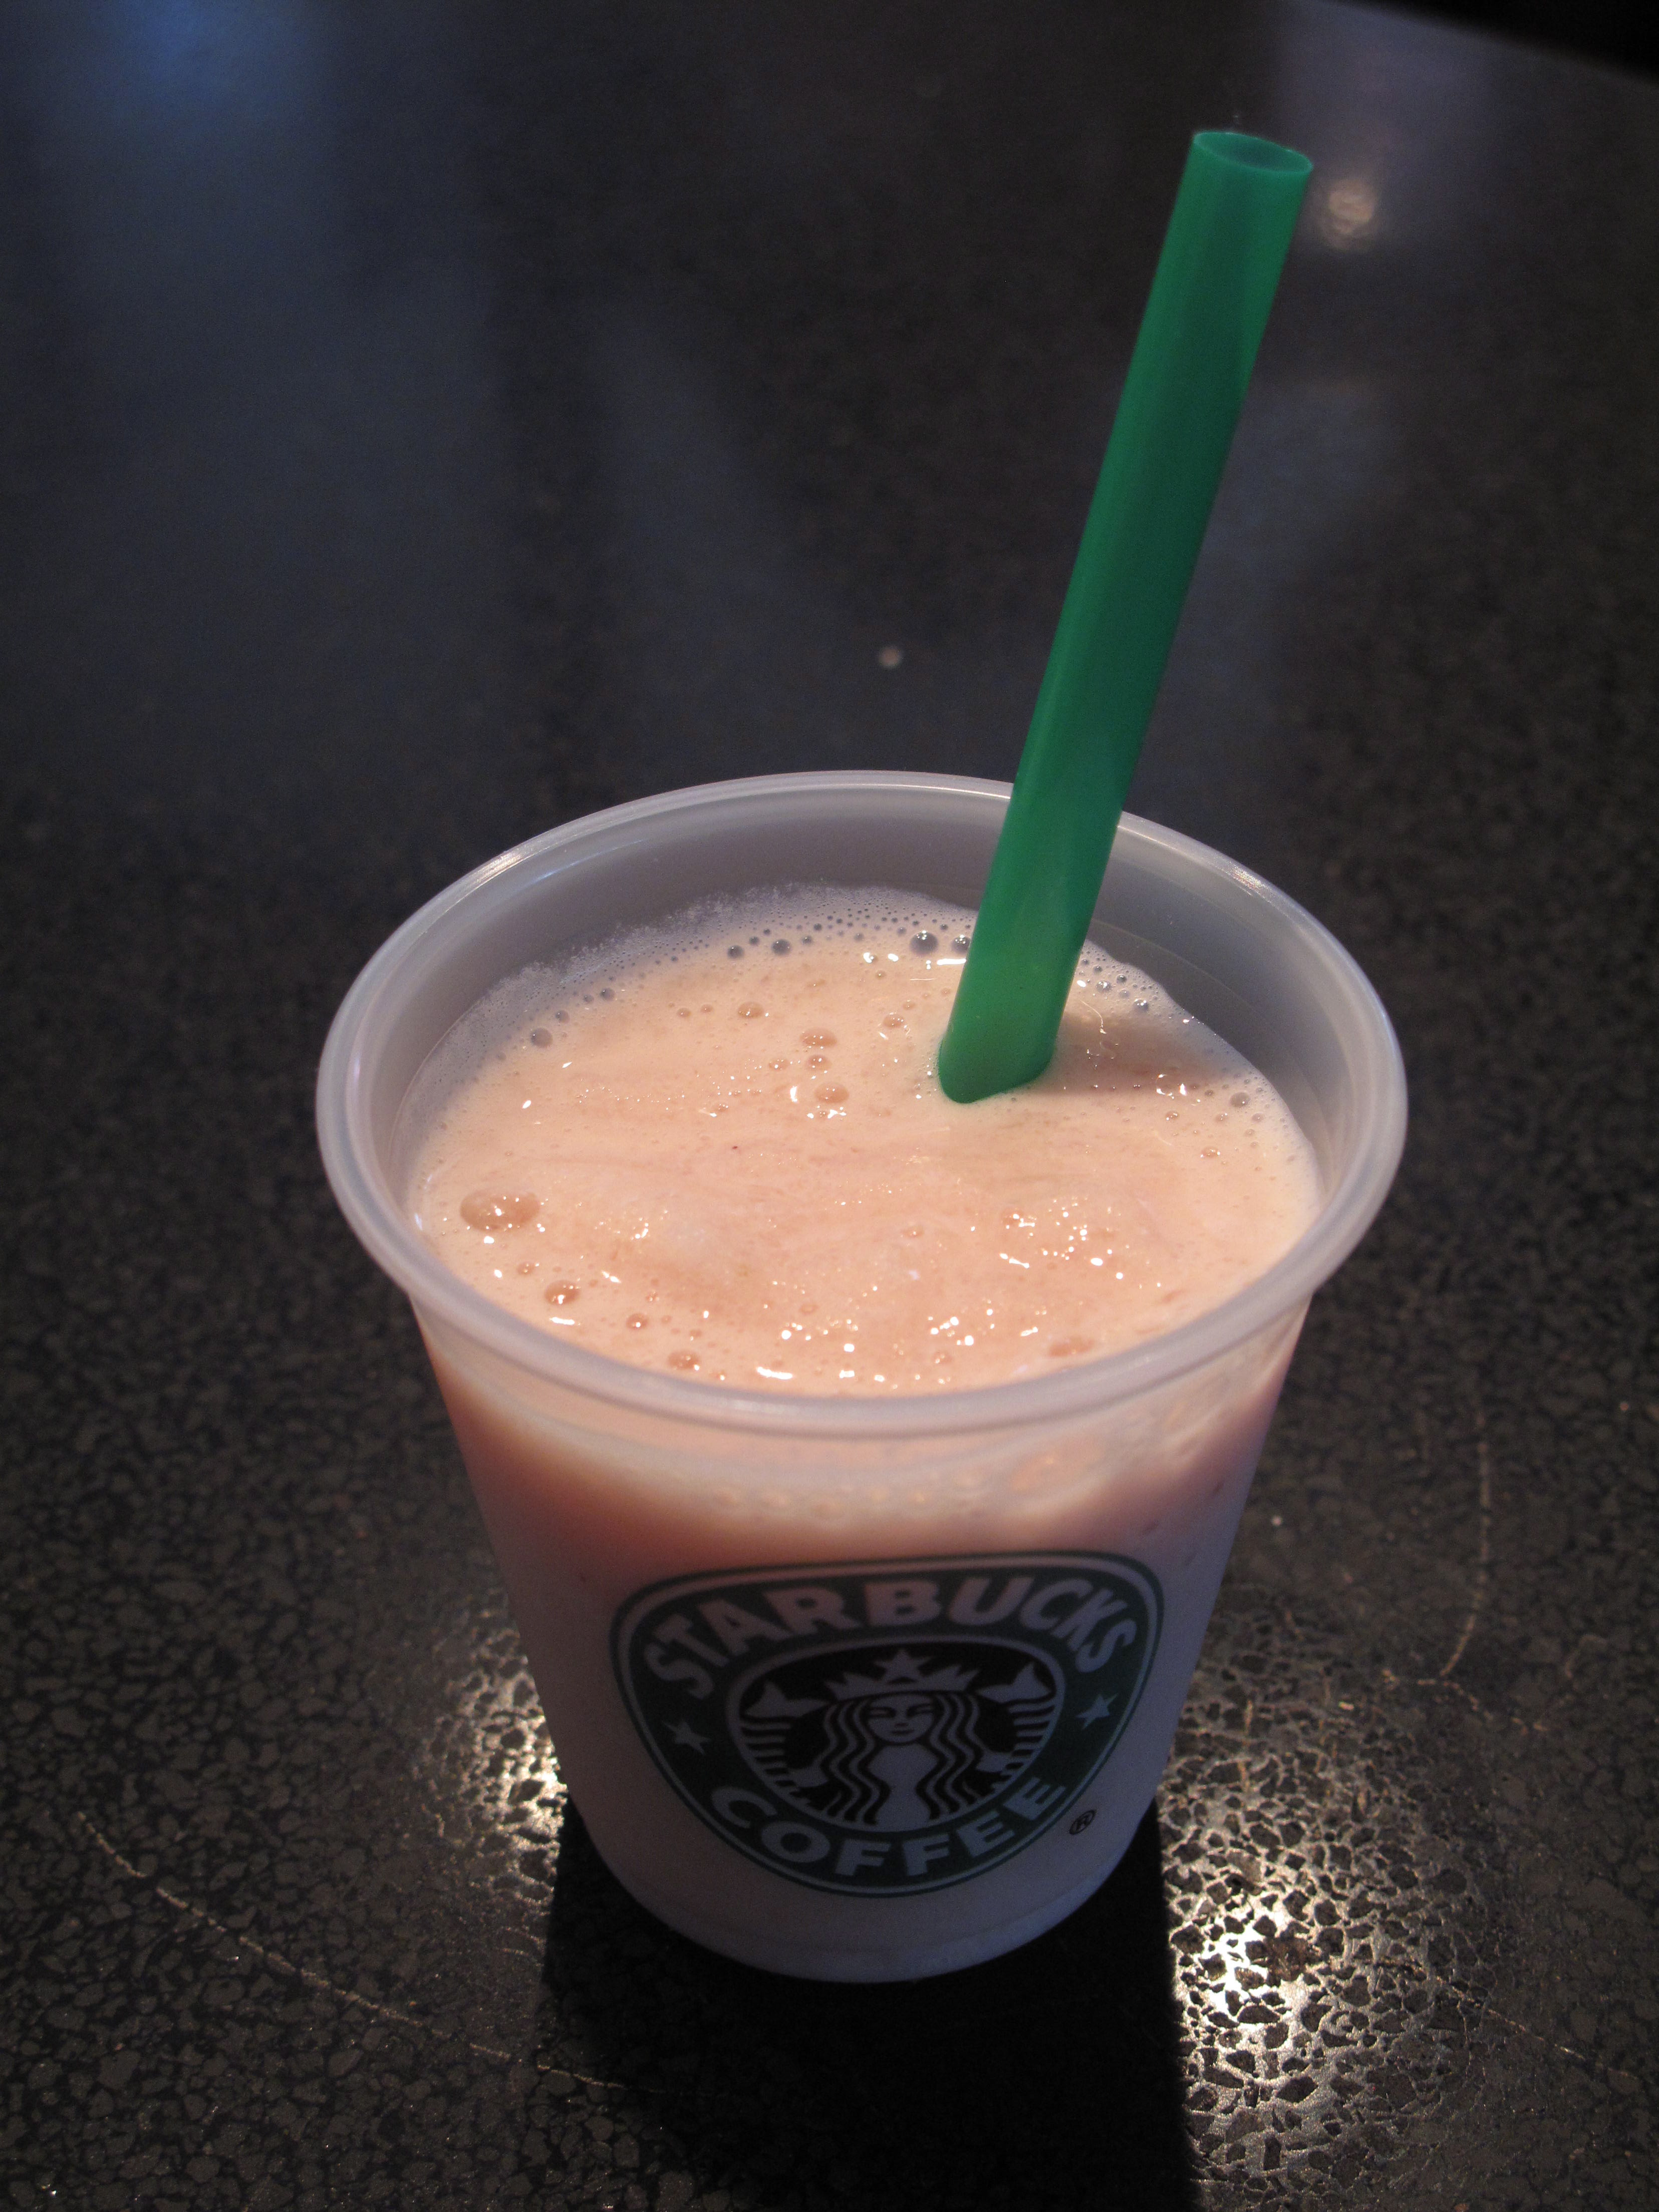 The new Soy Strawberries & Creme Frappuccino.